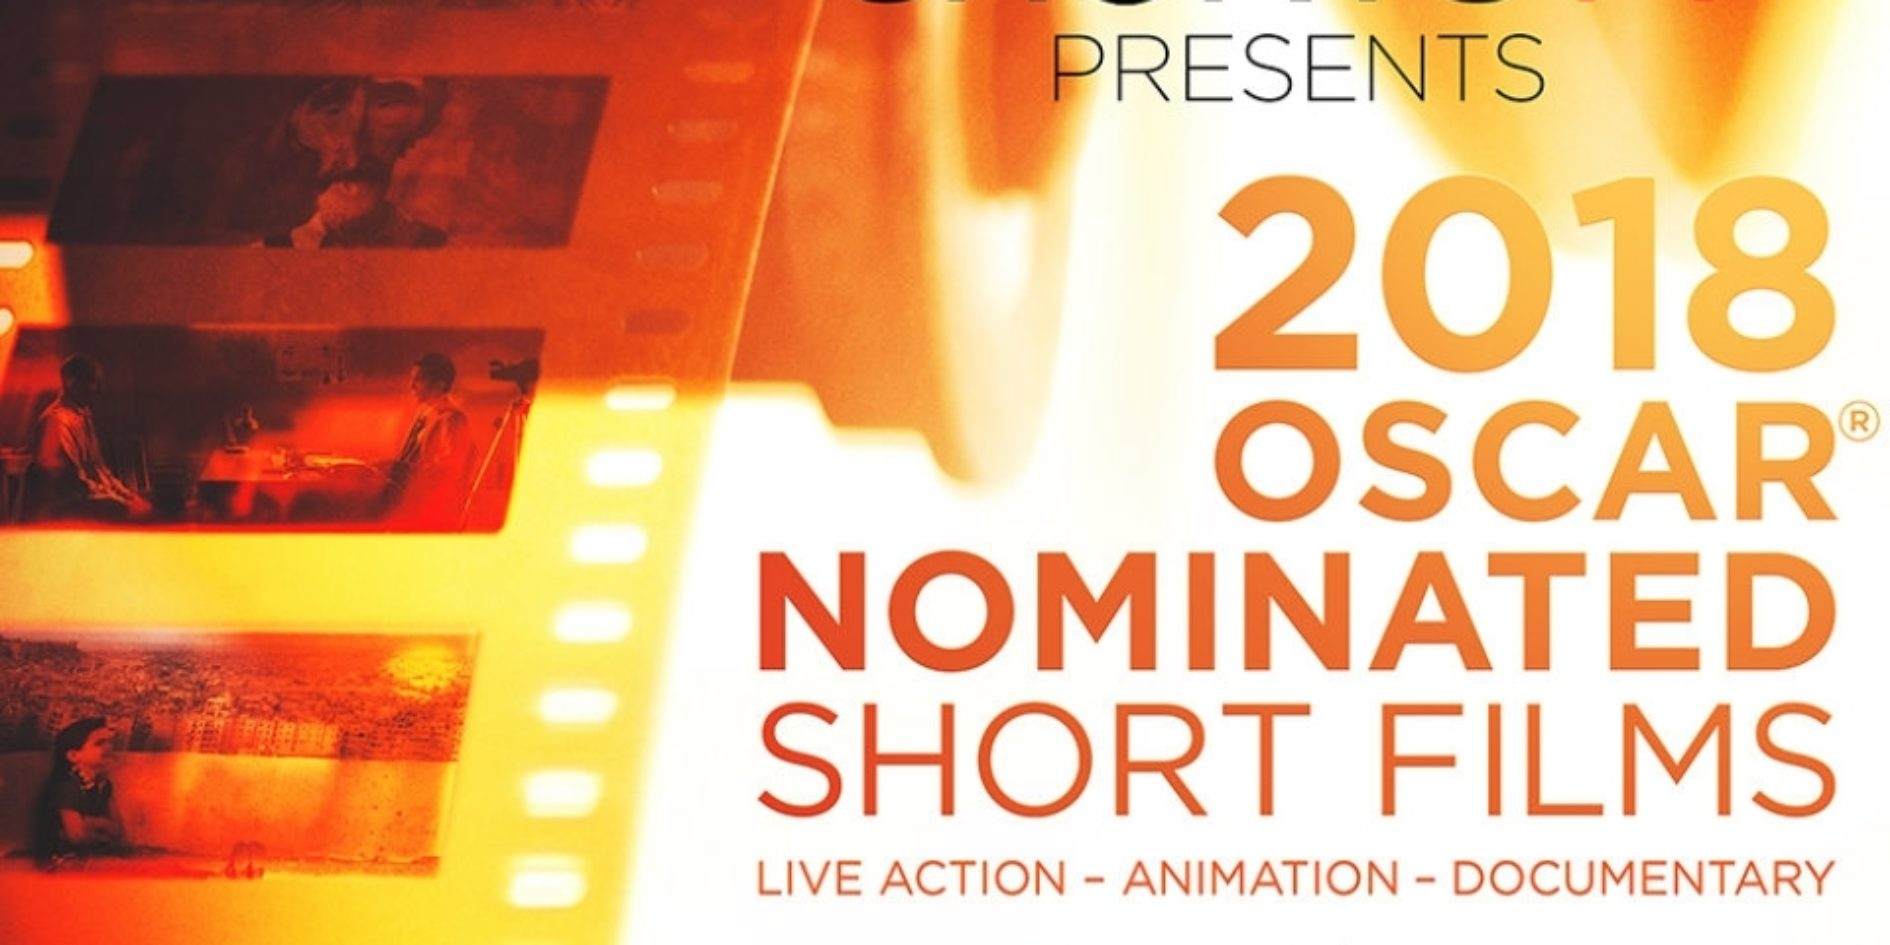 Oscar nominated short films 2018